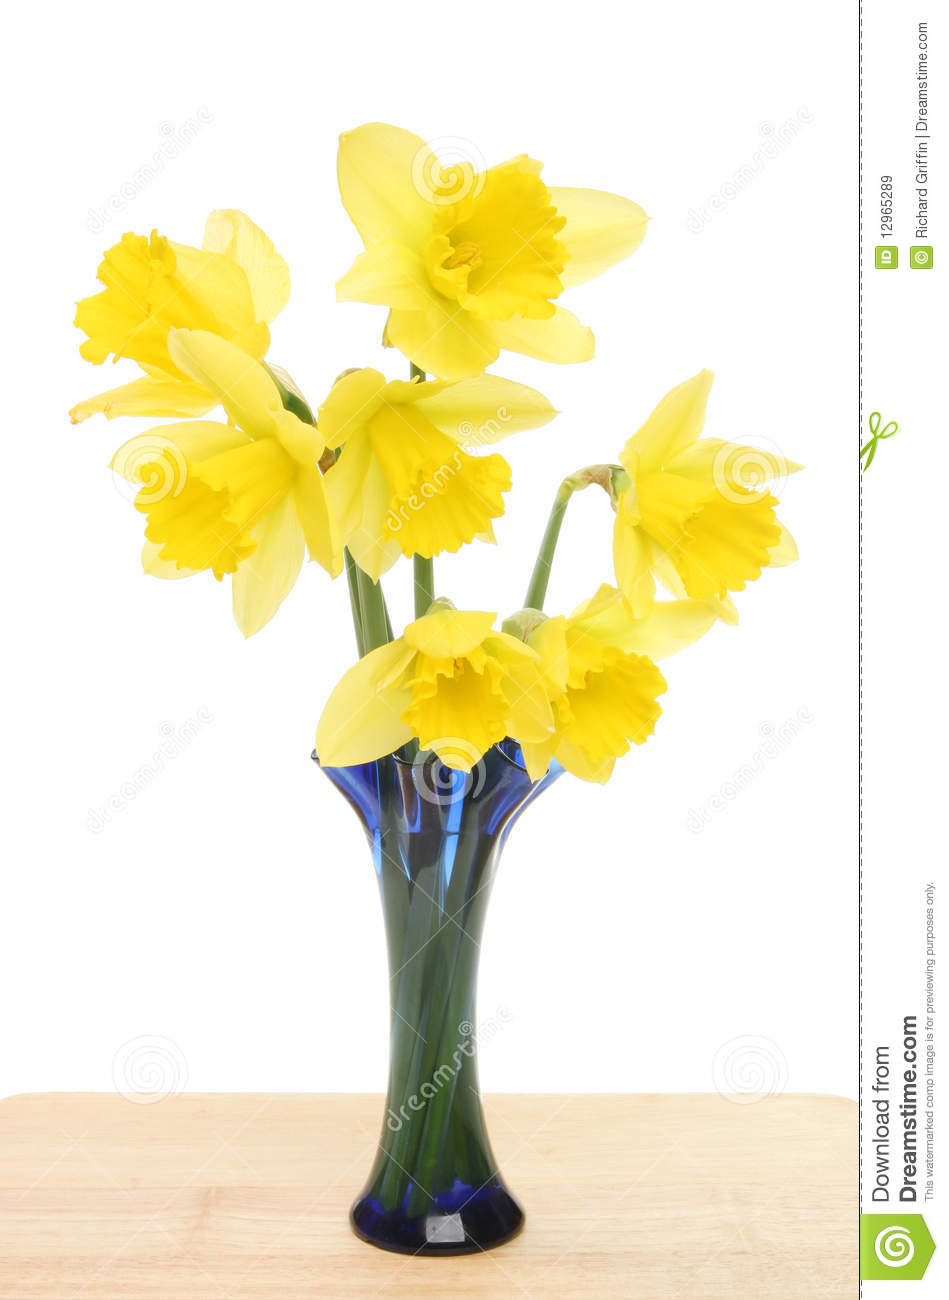 Daffodils In A Vase Stock Image Image Of Wooden Flower